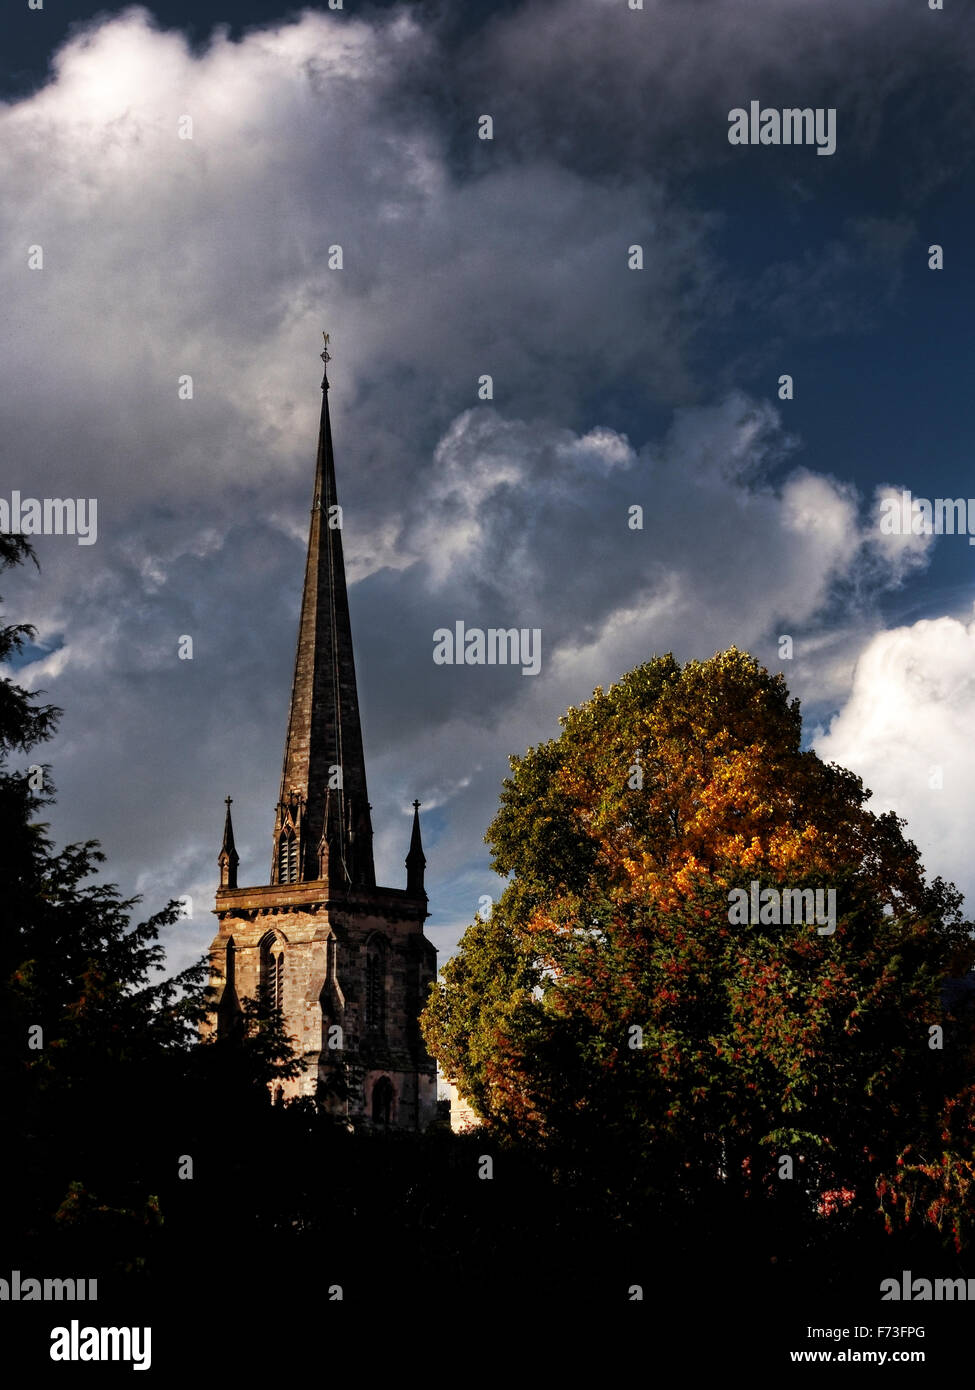 St. Peter's is the older of the two remaining medieval parish churches in the City of Hereford, England - Stock Image